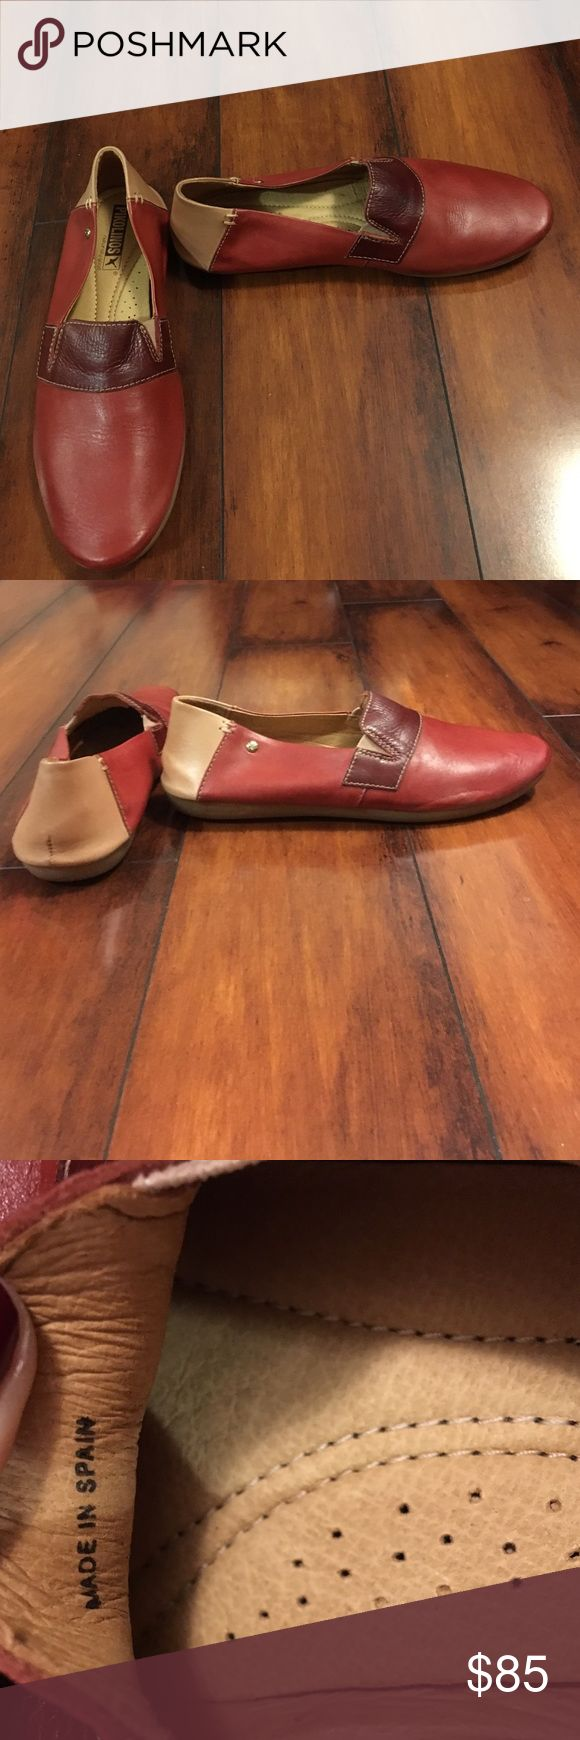 New PIKOLINOS flats These are all leather flats and are worth at least $150 because of the comfort and quality. Now it's your chance to get it for a steal. They're BRAND NEW and never worn!  NWOT! Made in Spain! Women European size 37 and fits a size 6.5 - 7 in USA women's. PIKOLINOS Shoes Flats & Loafers